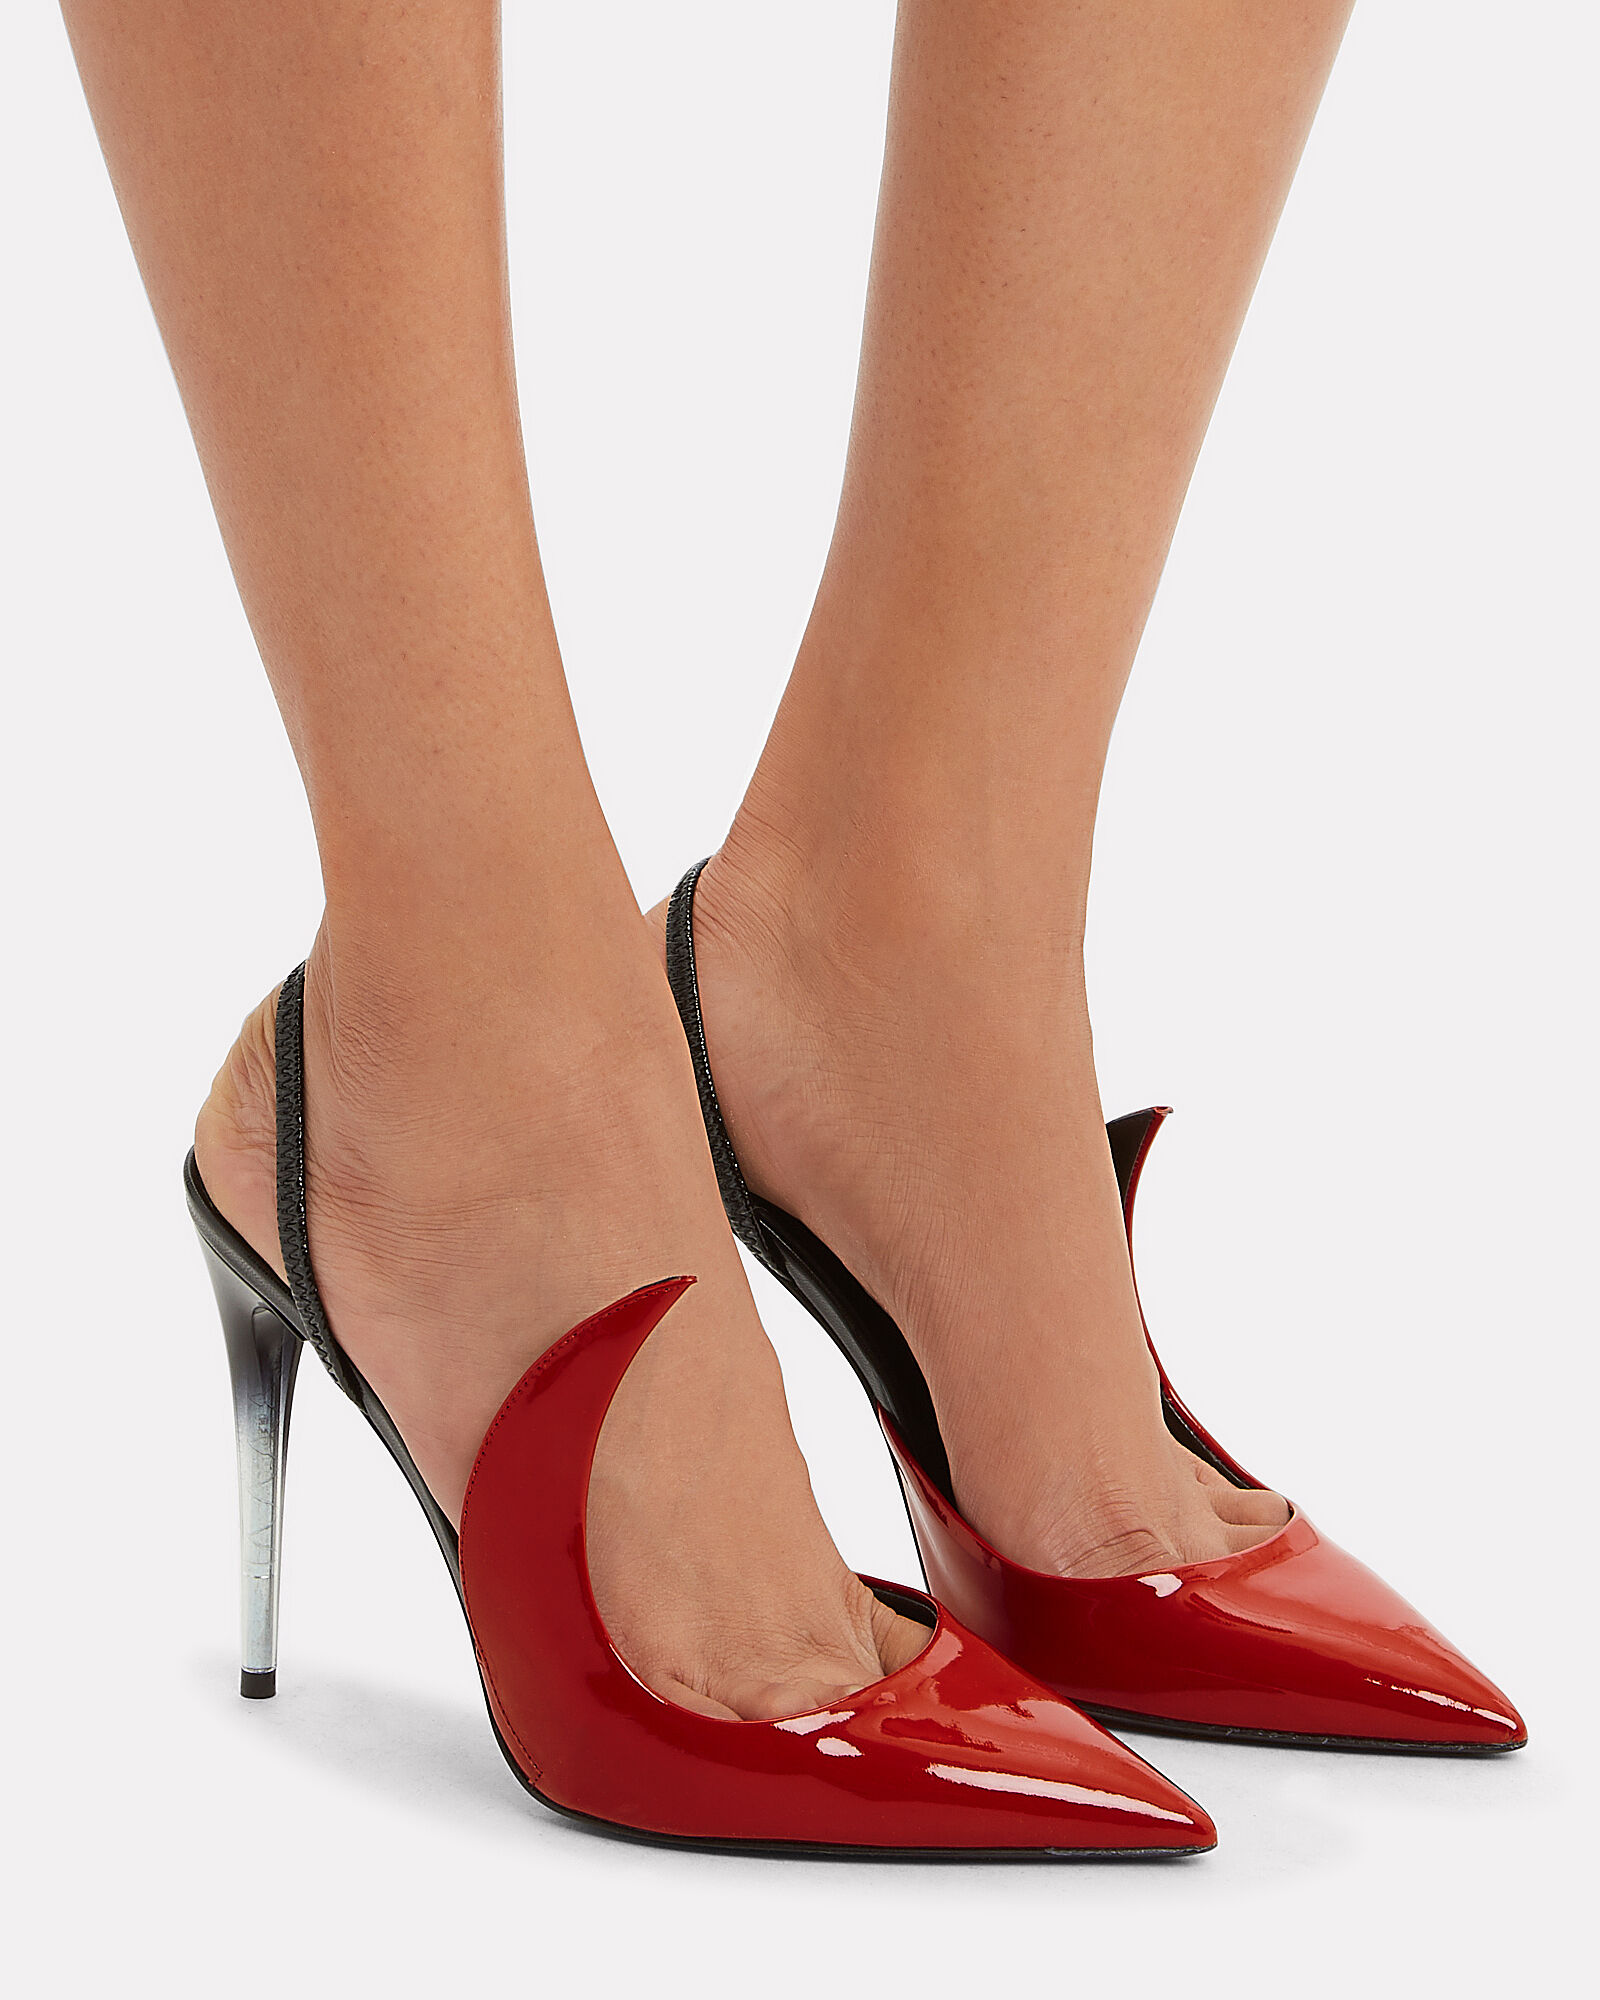 Ala Red Patent Leather Slingback Pumps, RED/BLACK, hi-res